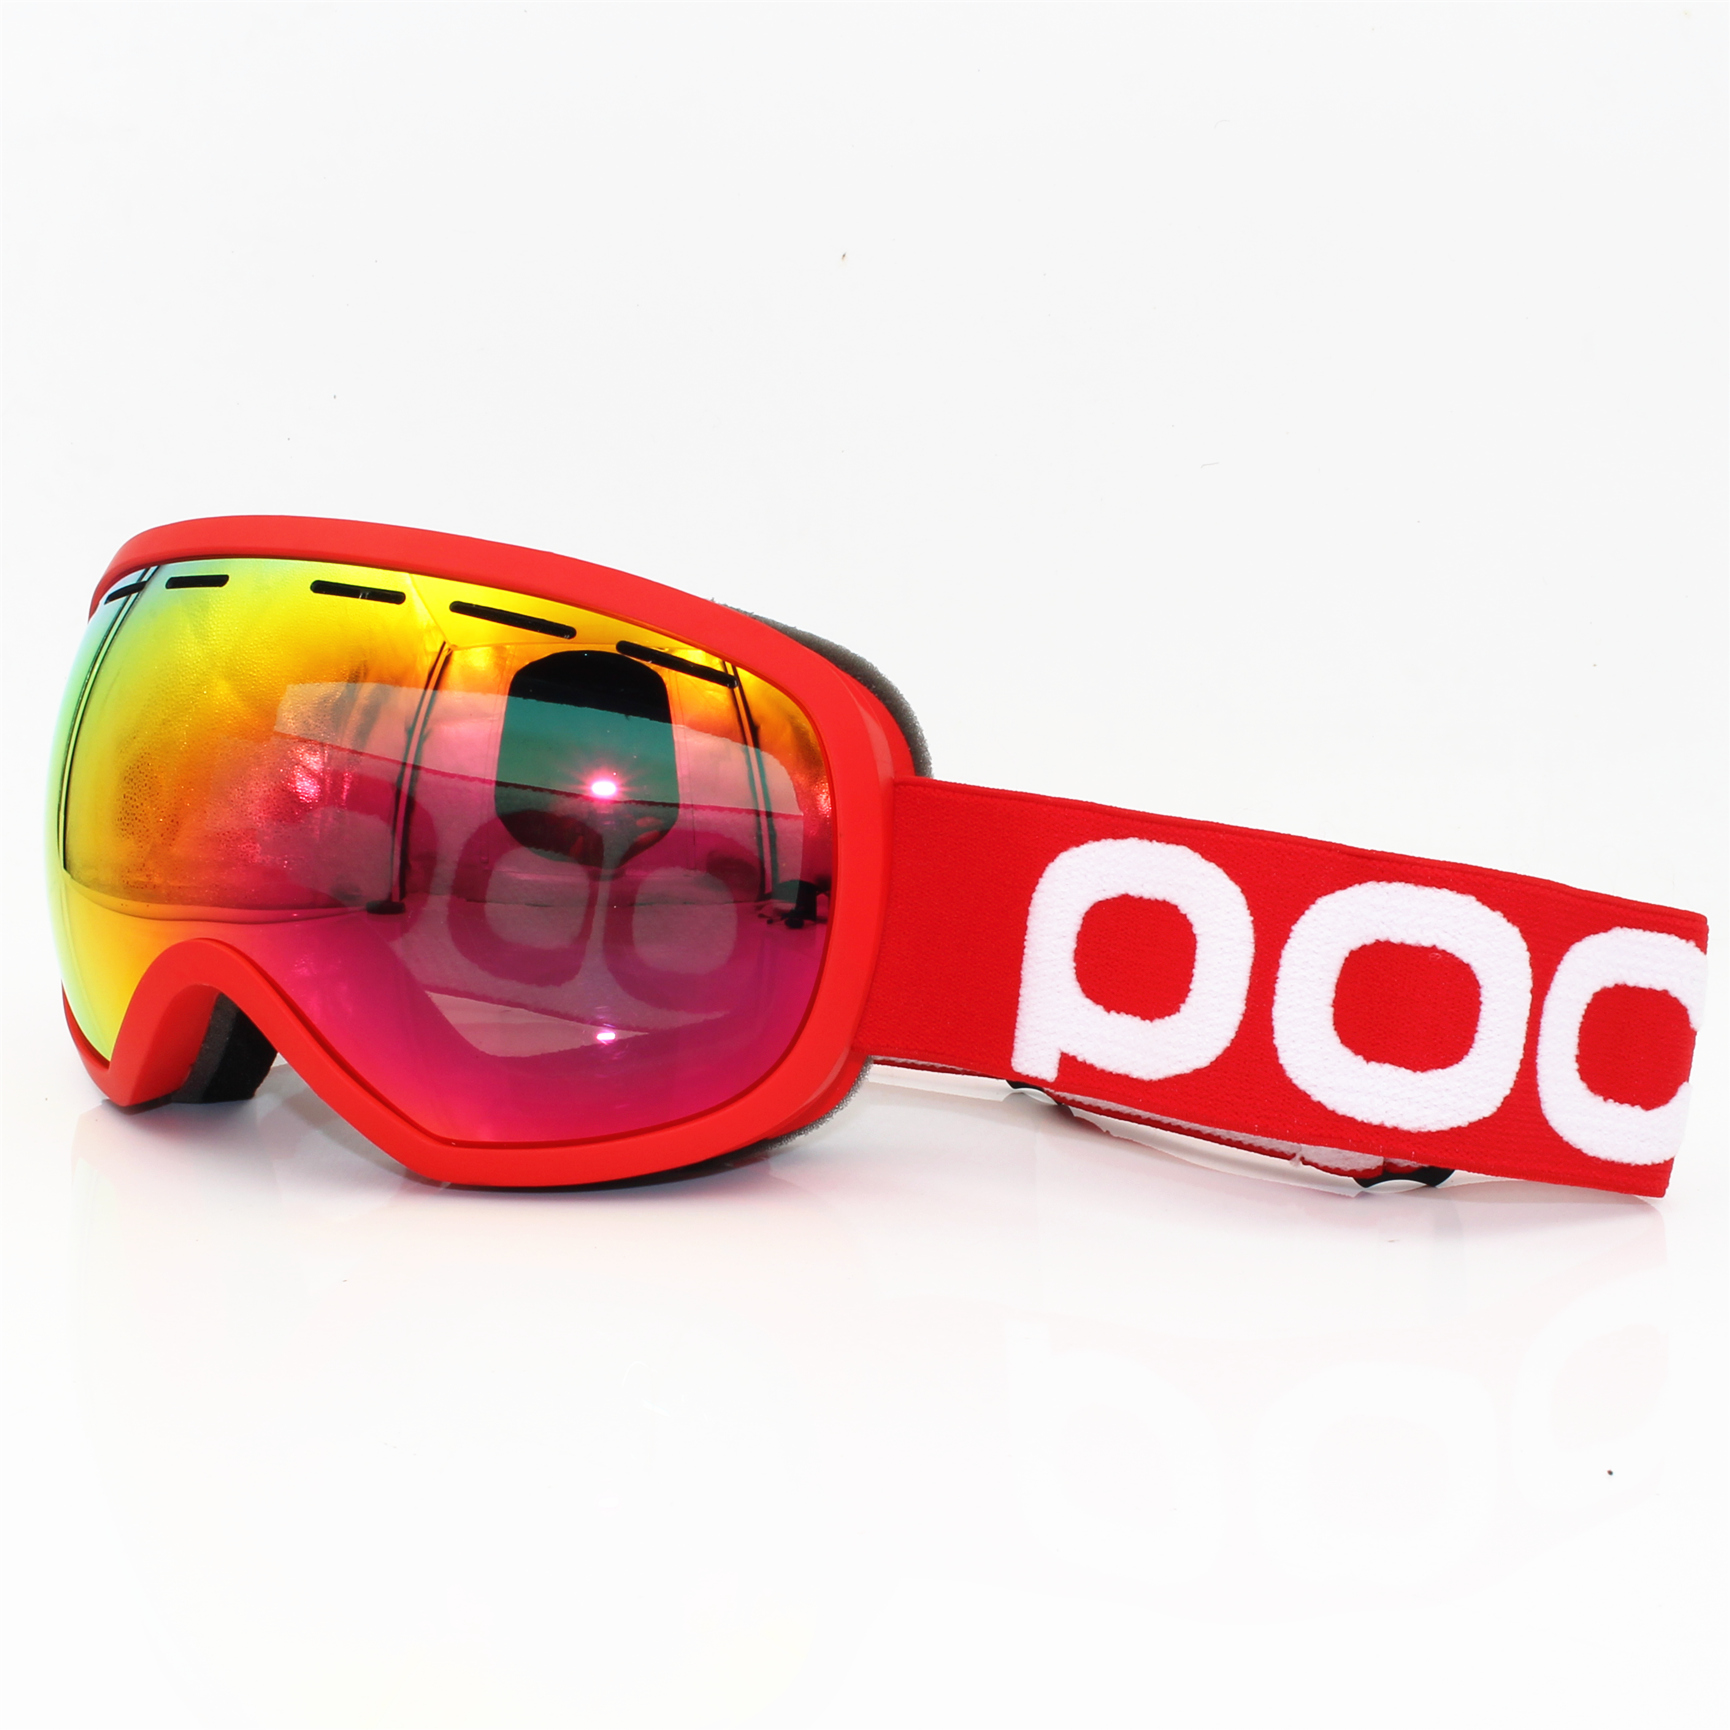 Poc Sunglasses Ski-Goggles Comp Snowboard Clarity Women Skiing Fovea Brand Layers Double-Anti-Fog title=